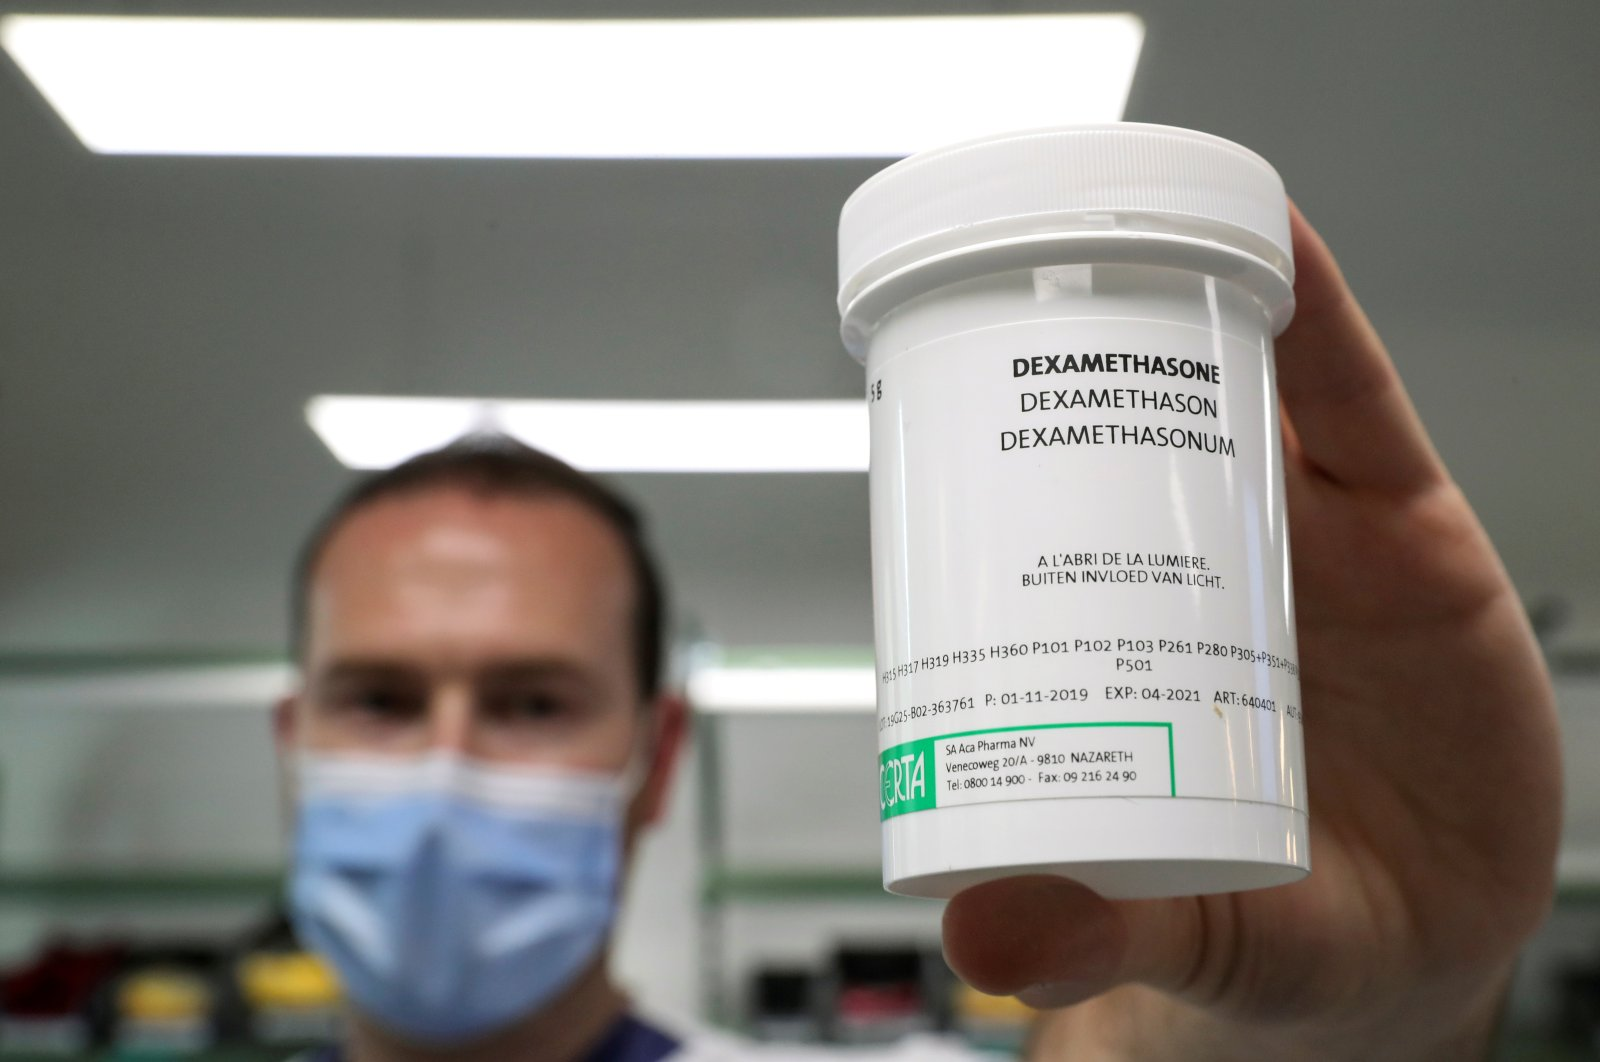 A pharmacist displays a box of Dexamethasone at the Erasme Hospital amid the coronavirus outbreak, in Brussels, Belgium, June 16, 2020. (Reuters Photo)